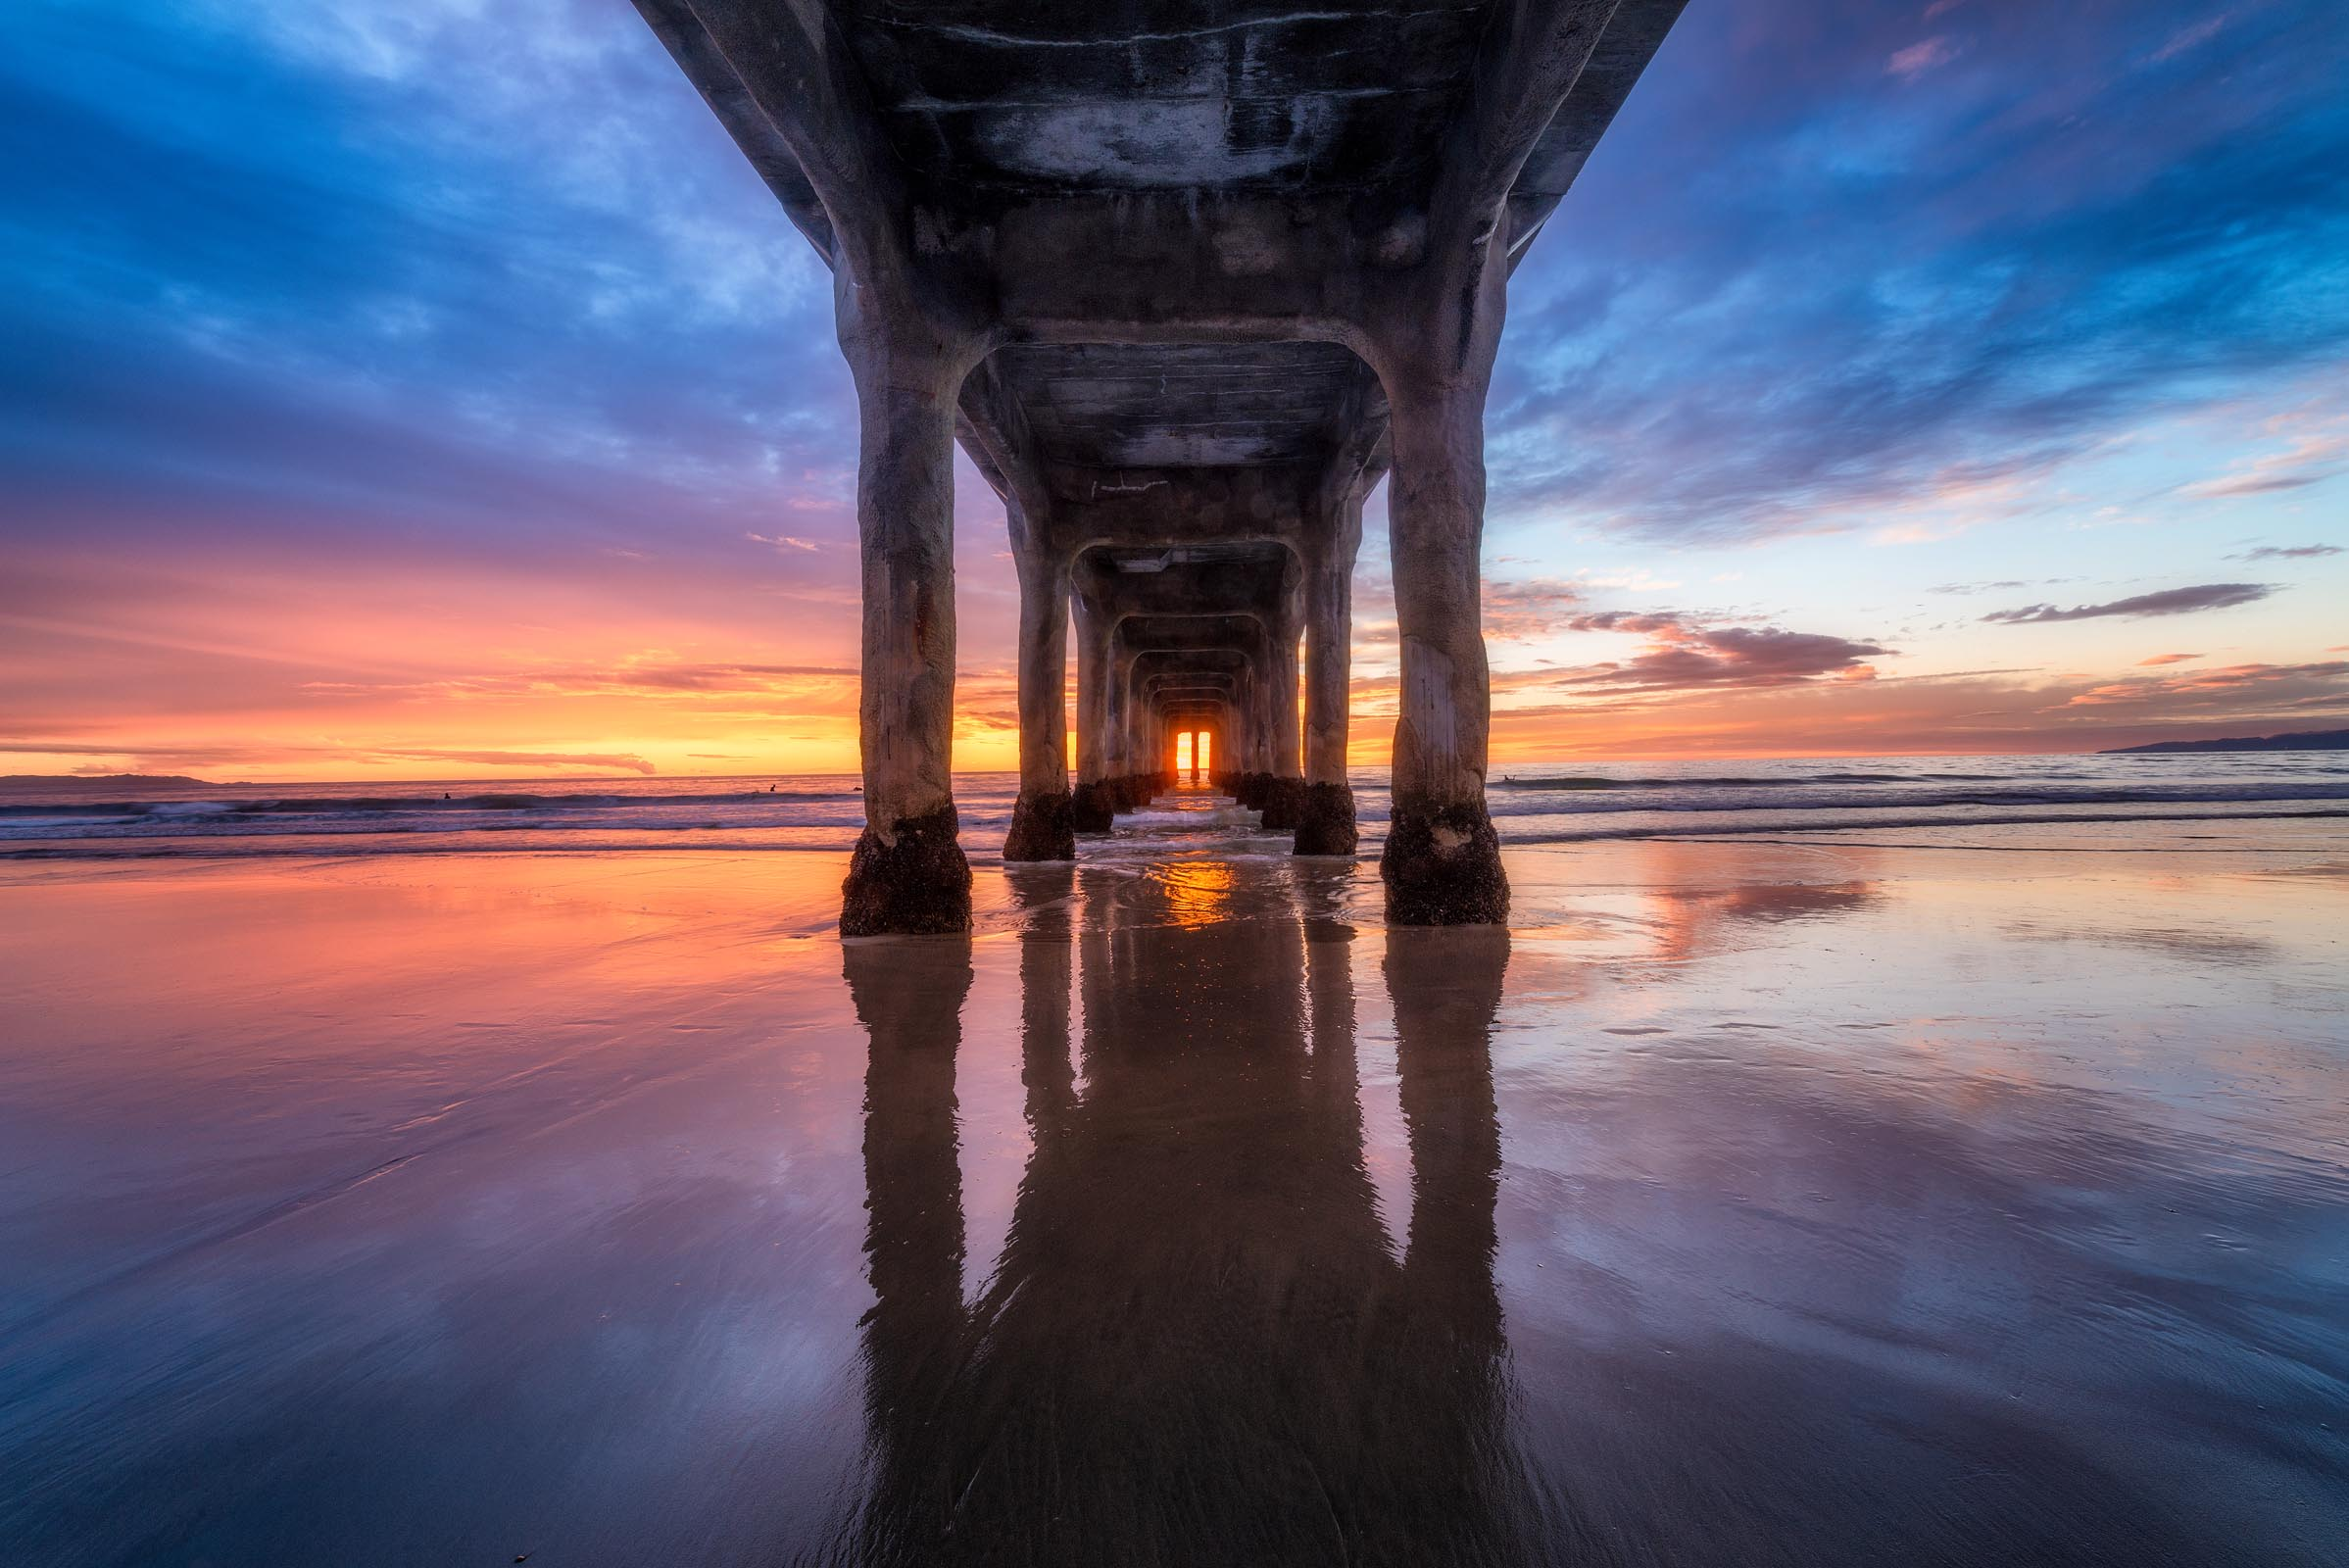 Photograph of Manhattan Beach Pier in Manhattan Beach, California by Brent Goldman Photography